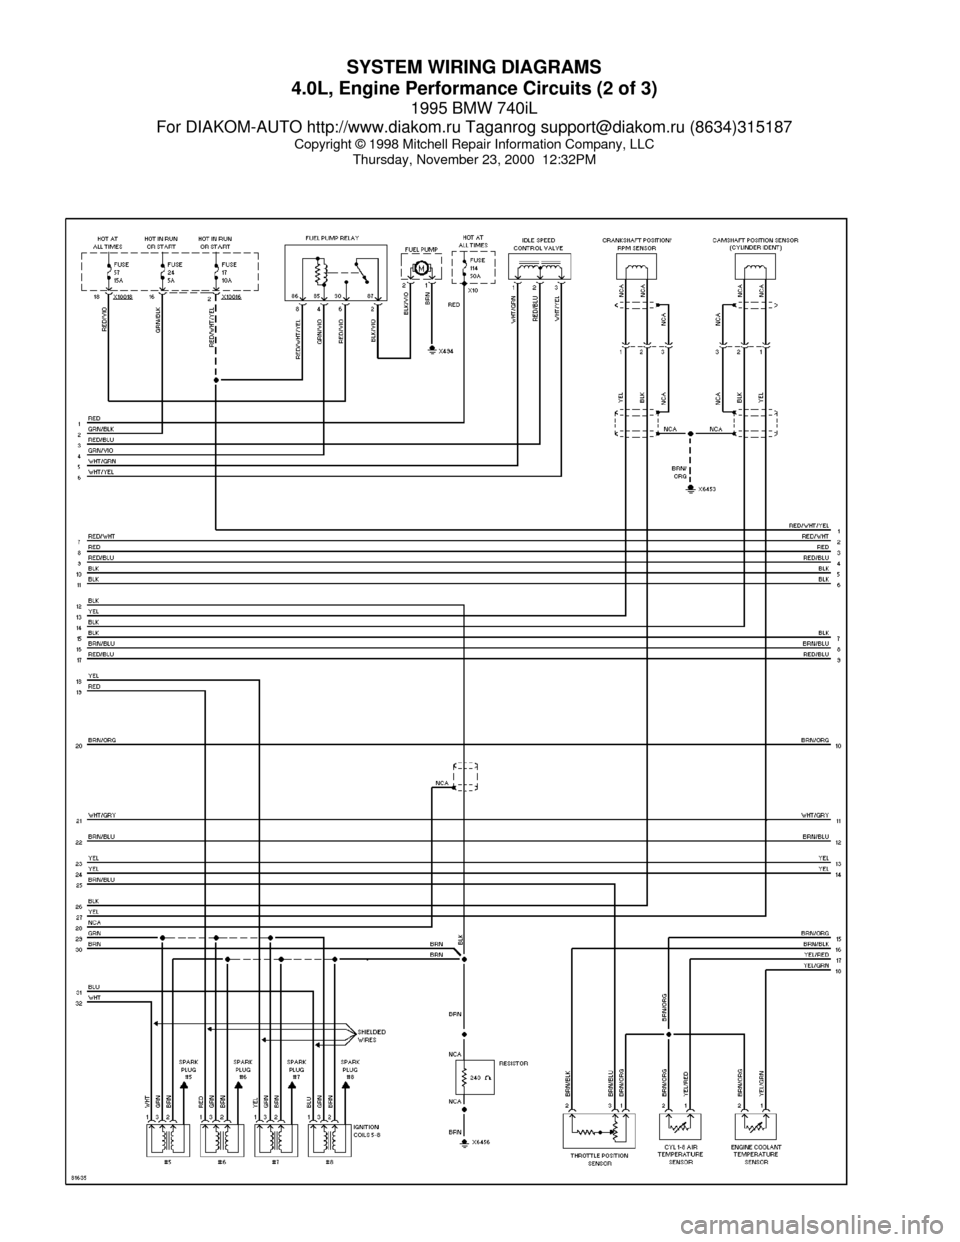 Bmw Wiring System Diagram Another Blog About Wds Download 740il 1995 E38 Diagrams Online